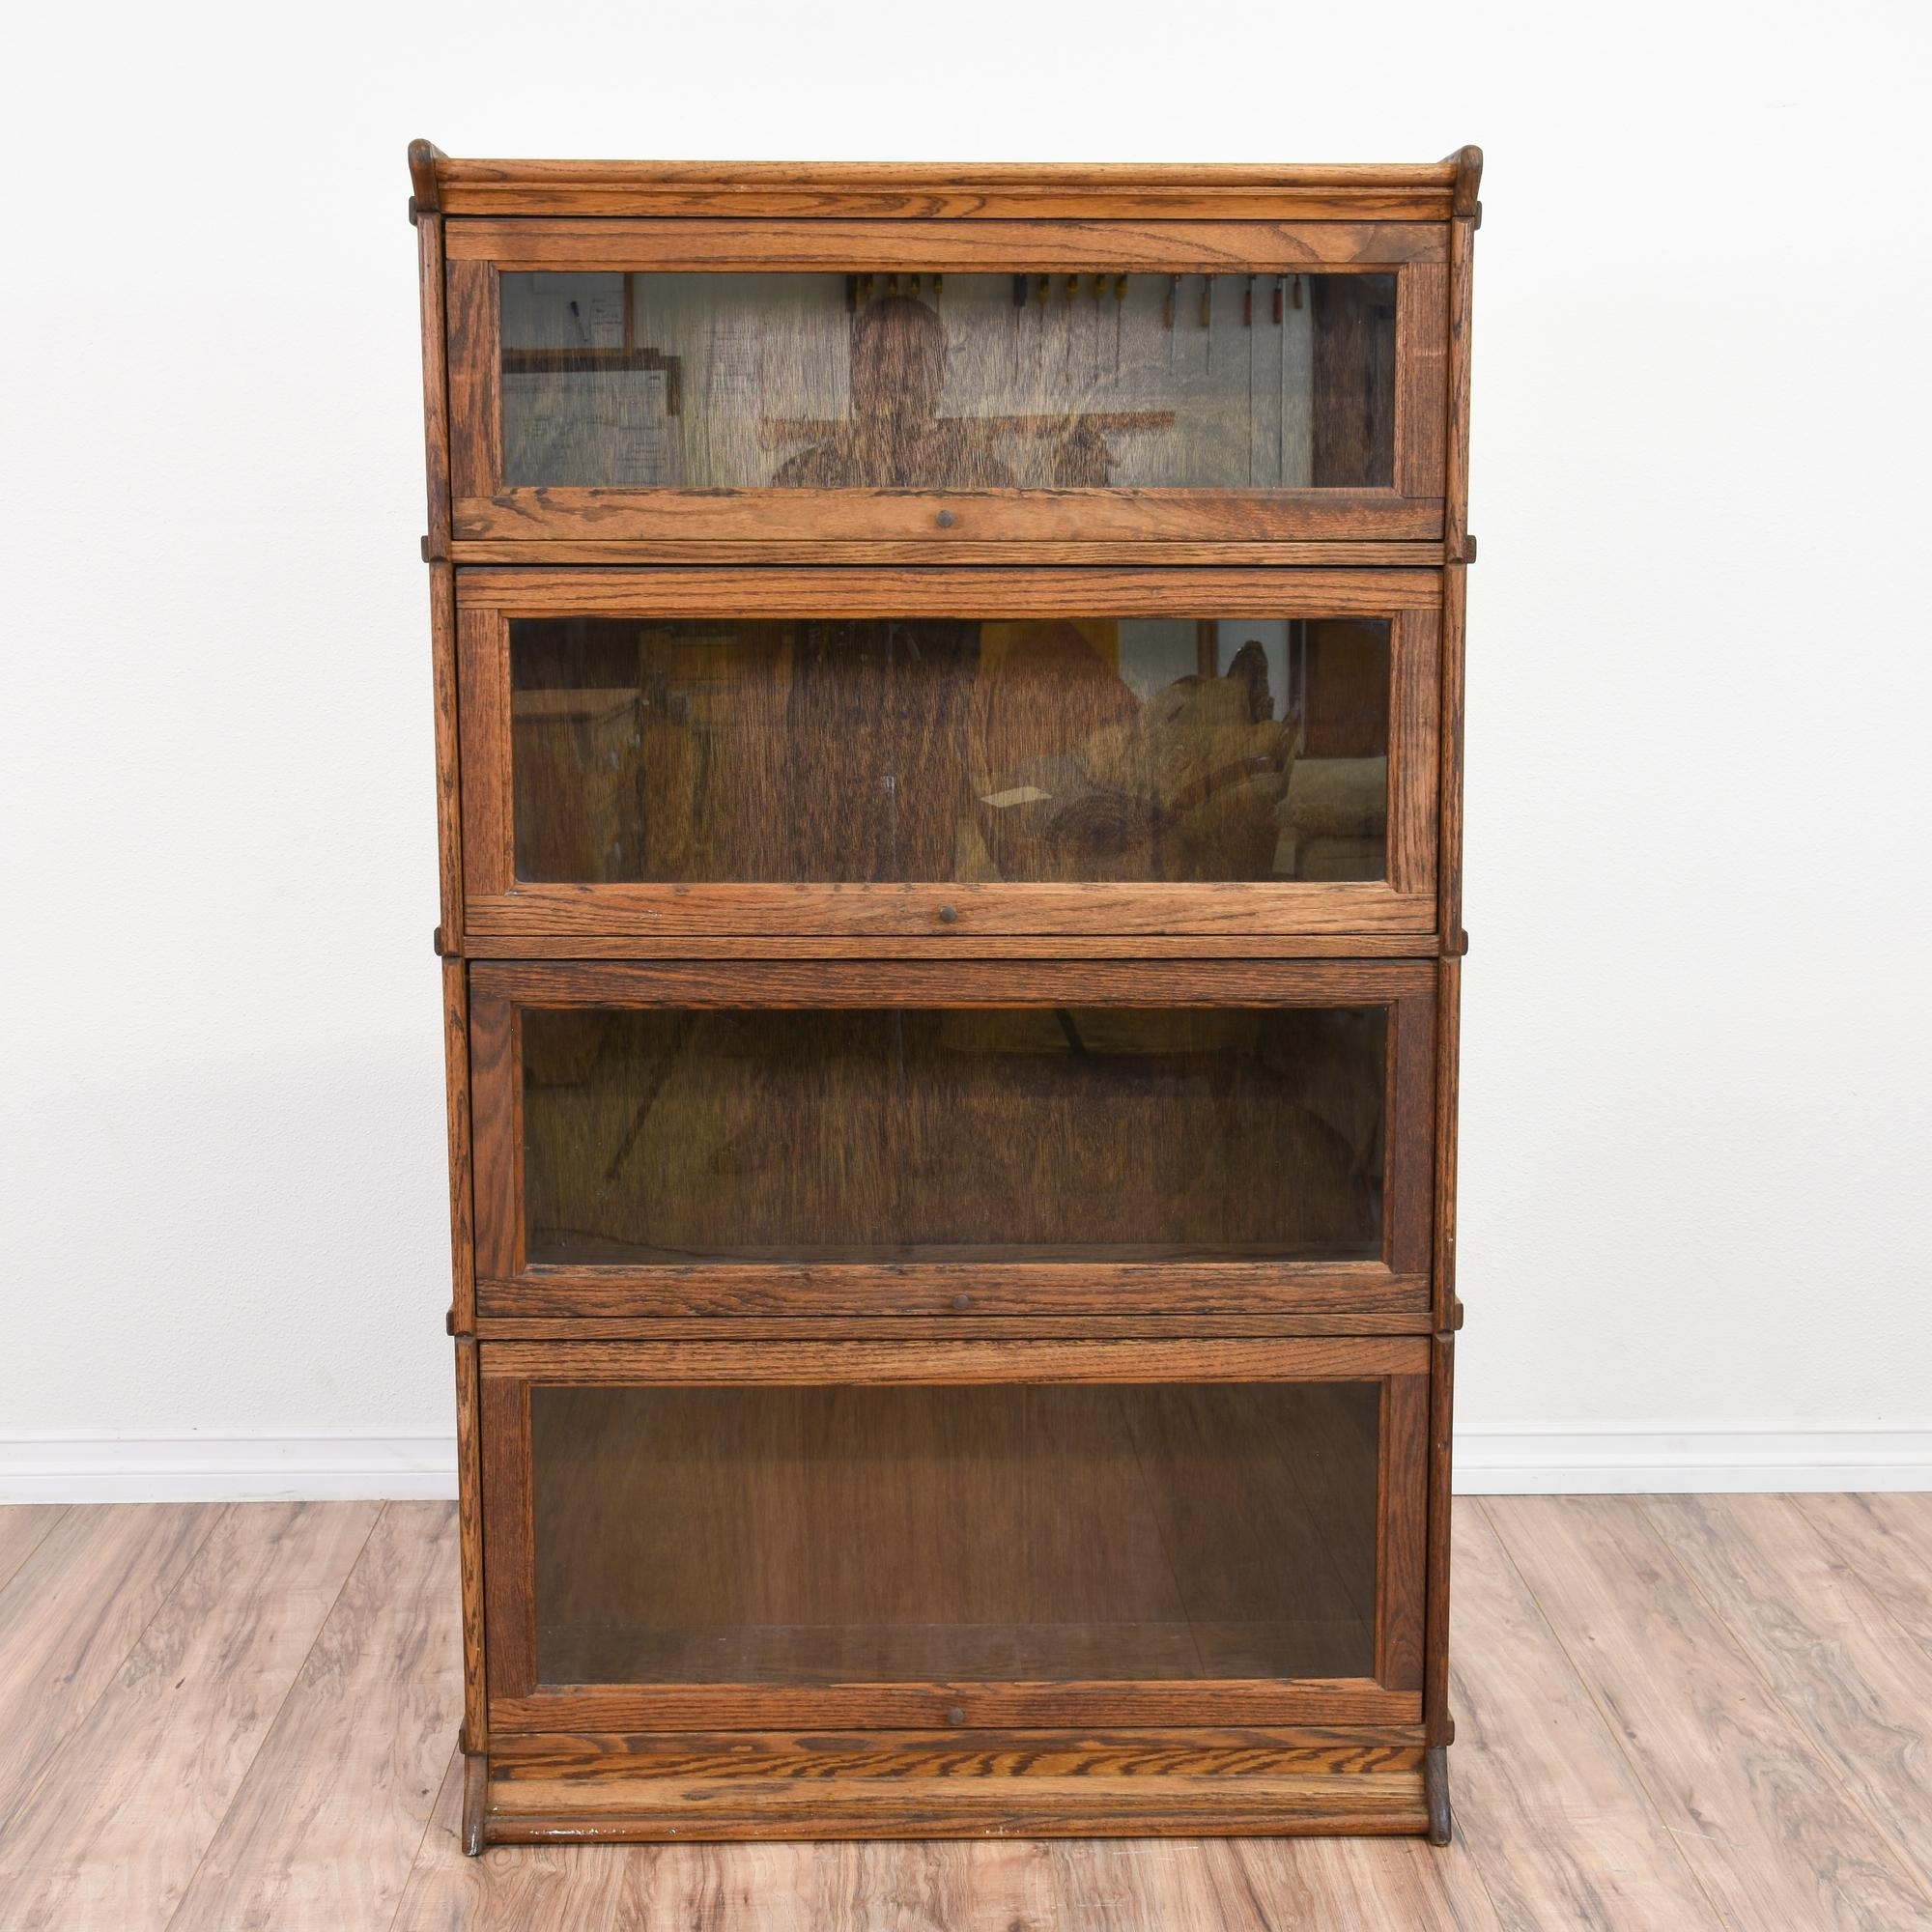 Most Current This Rustic Lawyers Bookcase Is Featured In A Solid Wood With A Within Lawyers Bookcases (View 6 of 15)